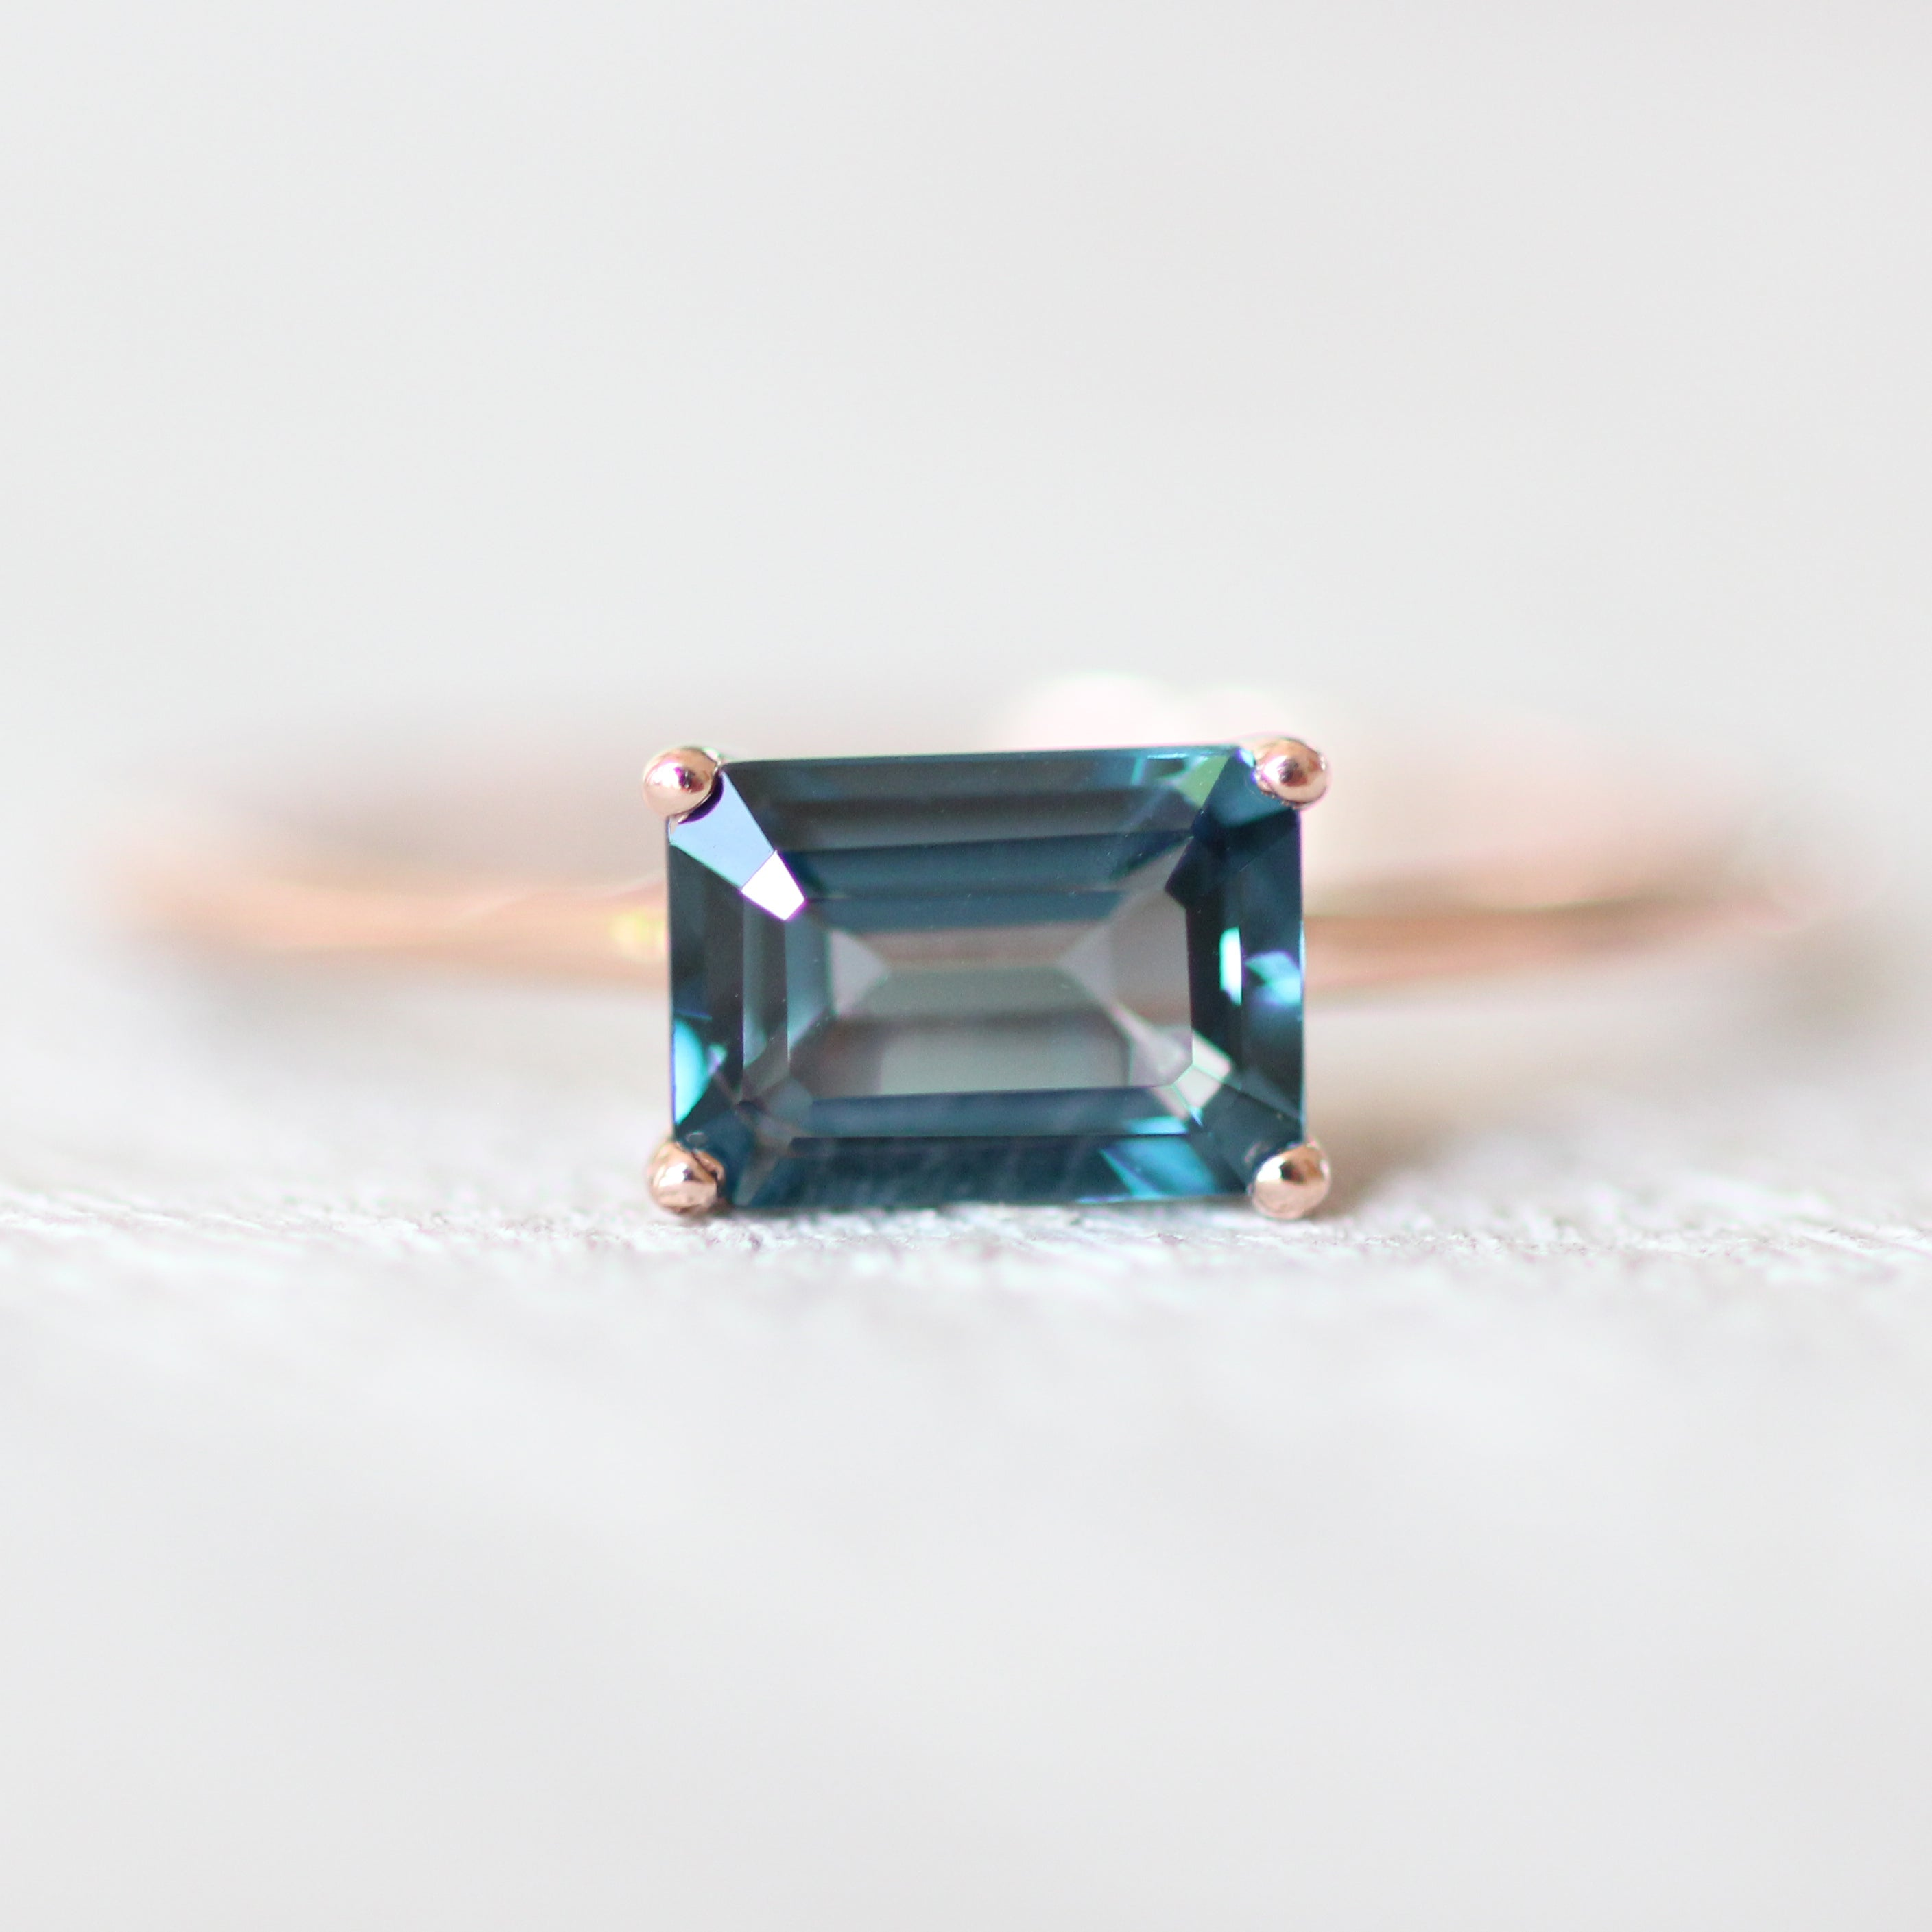 London Blue Topaz 1.3 carat Emerald Cut - Your choice of metal - Custom - Midwinter Co. Alternative Bridal Rings and Modern Fine Jewelry